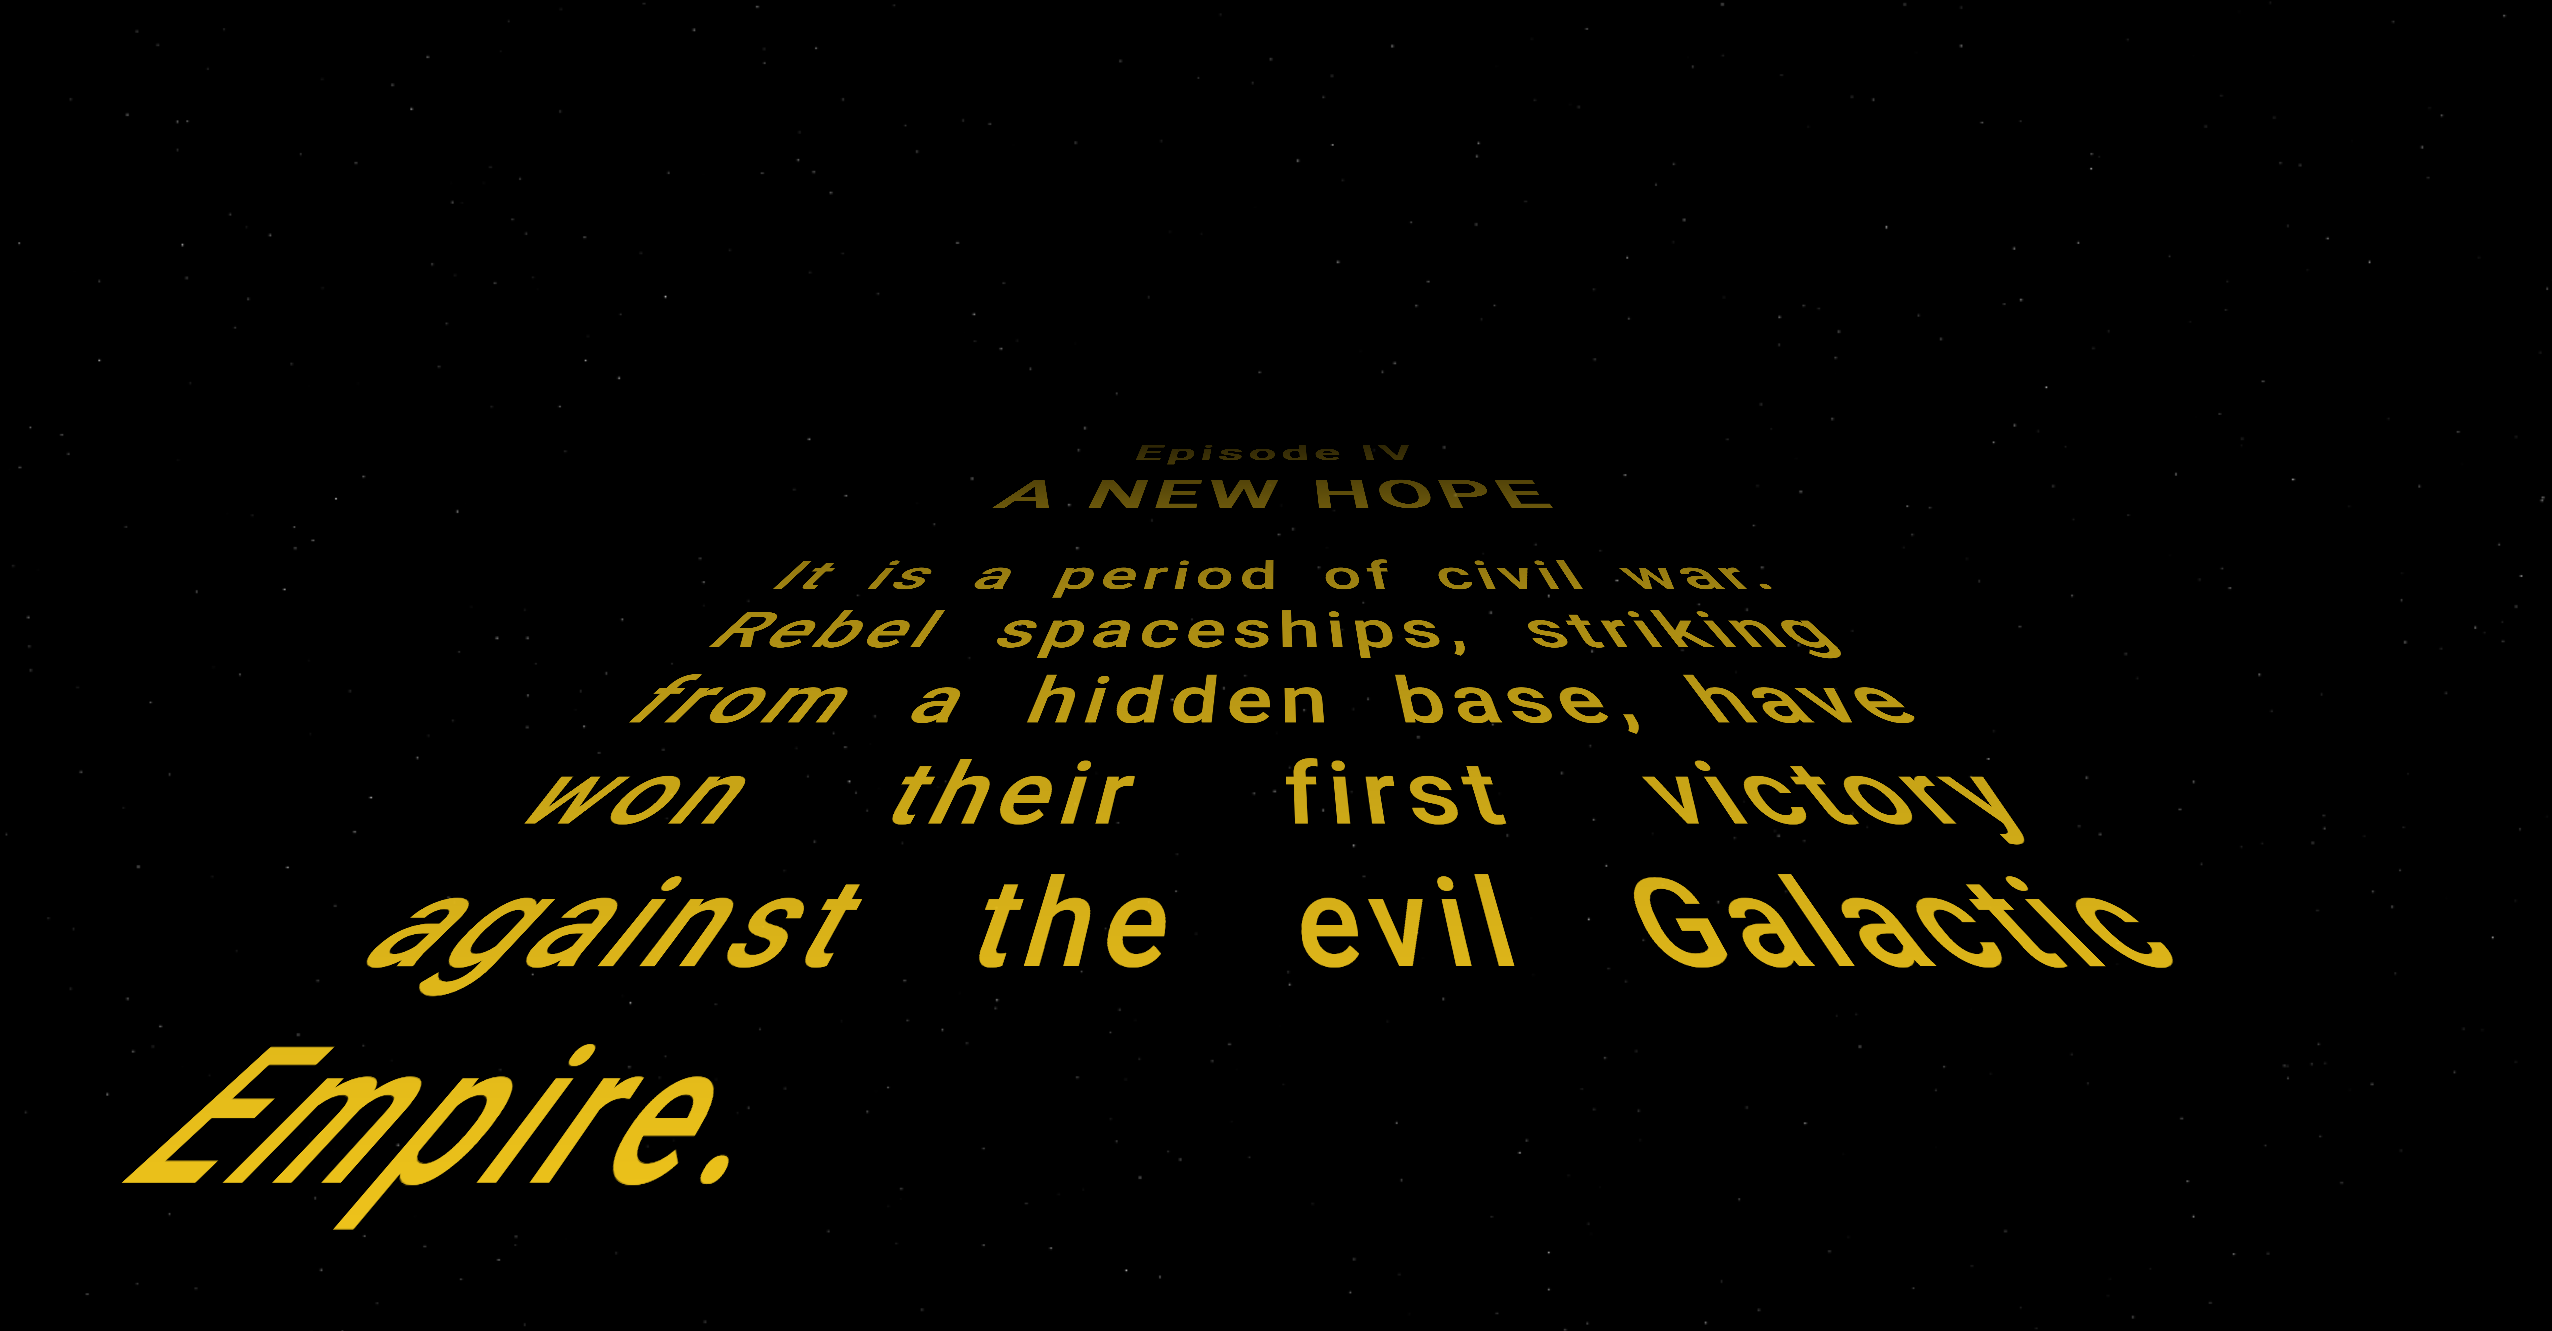 Create A Star Wars Title Crawl In Html By Slawomir Chodnicki Better Programming Medium